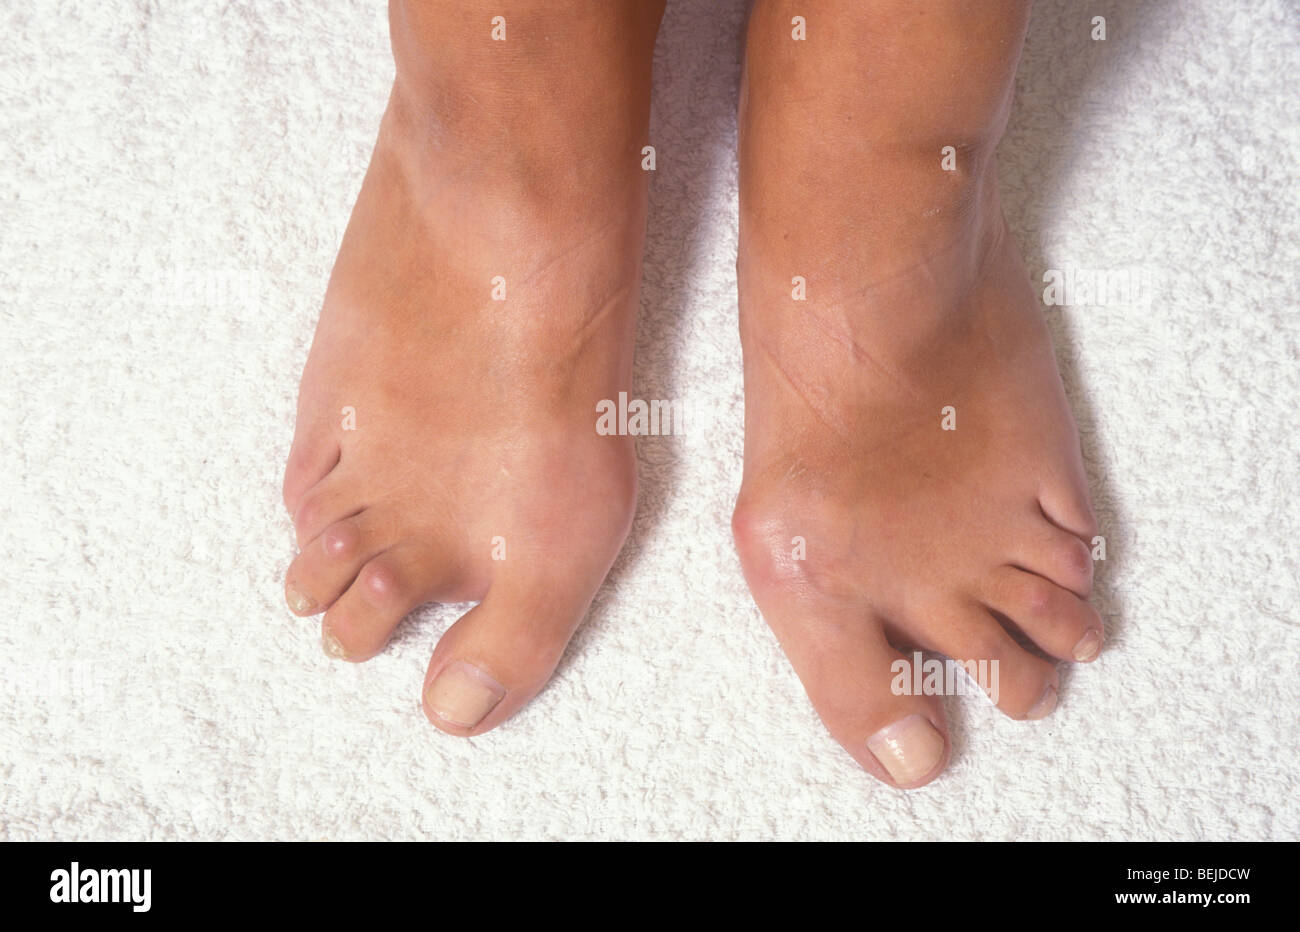 Arthritis Feet High Resolution Stock Photography And Images Alamy